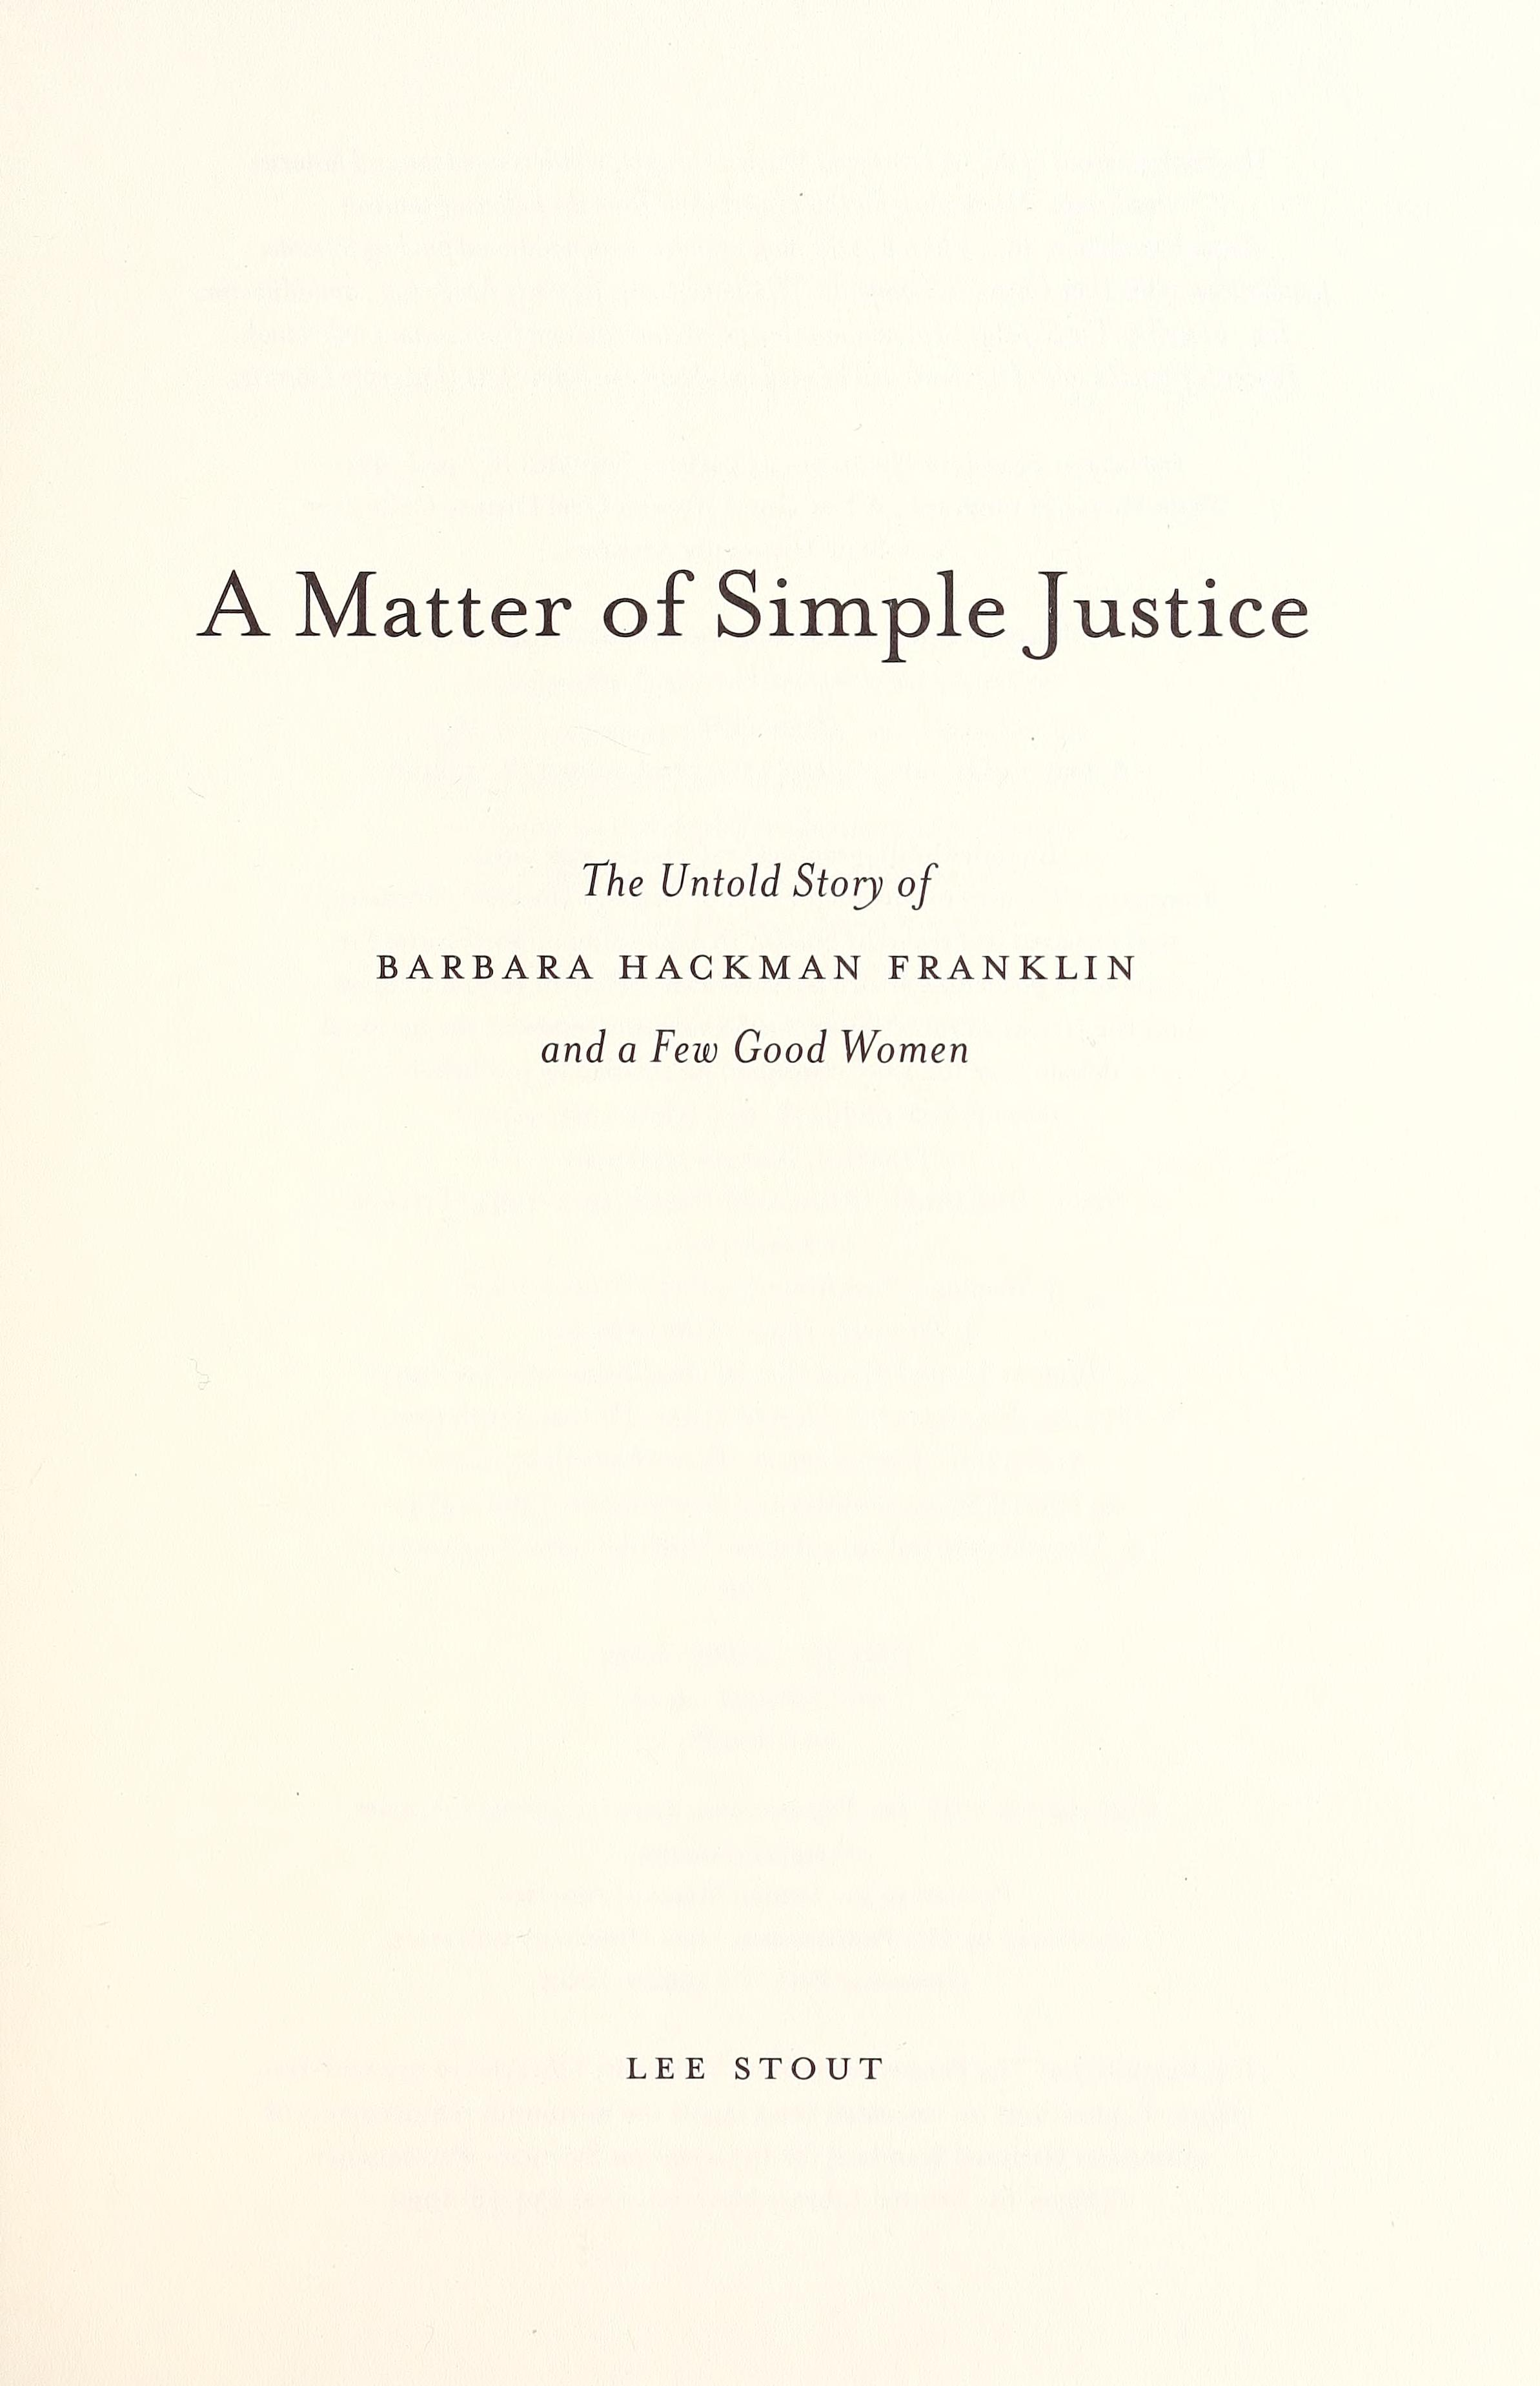 eBook A matter of simple justice download | online | audio id:erwmev9